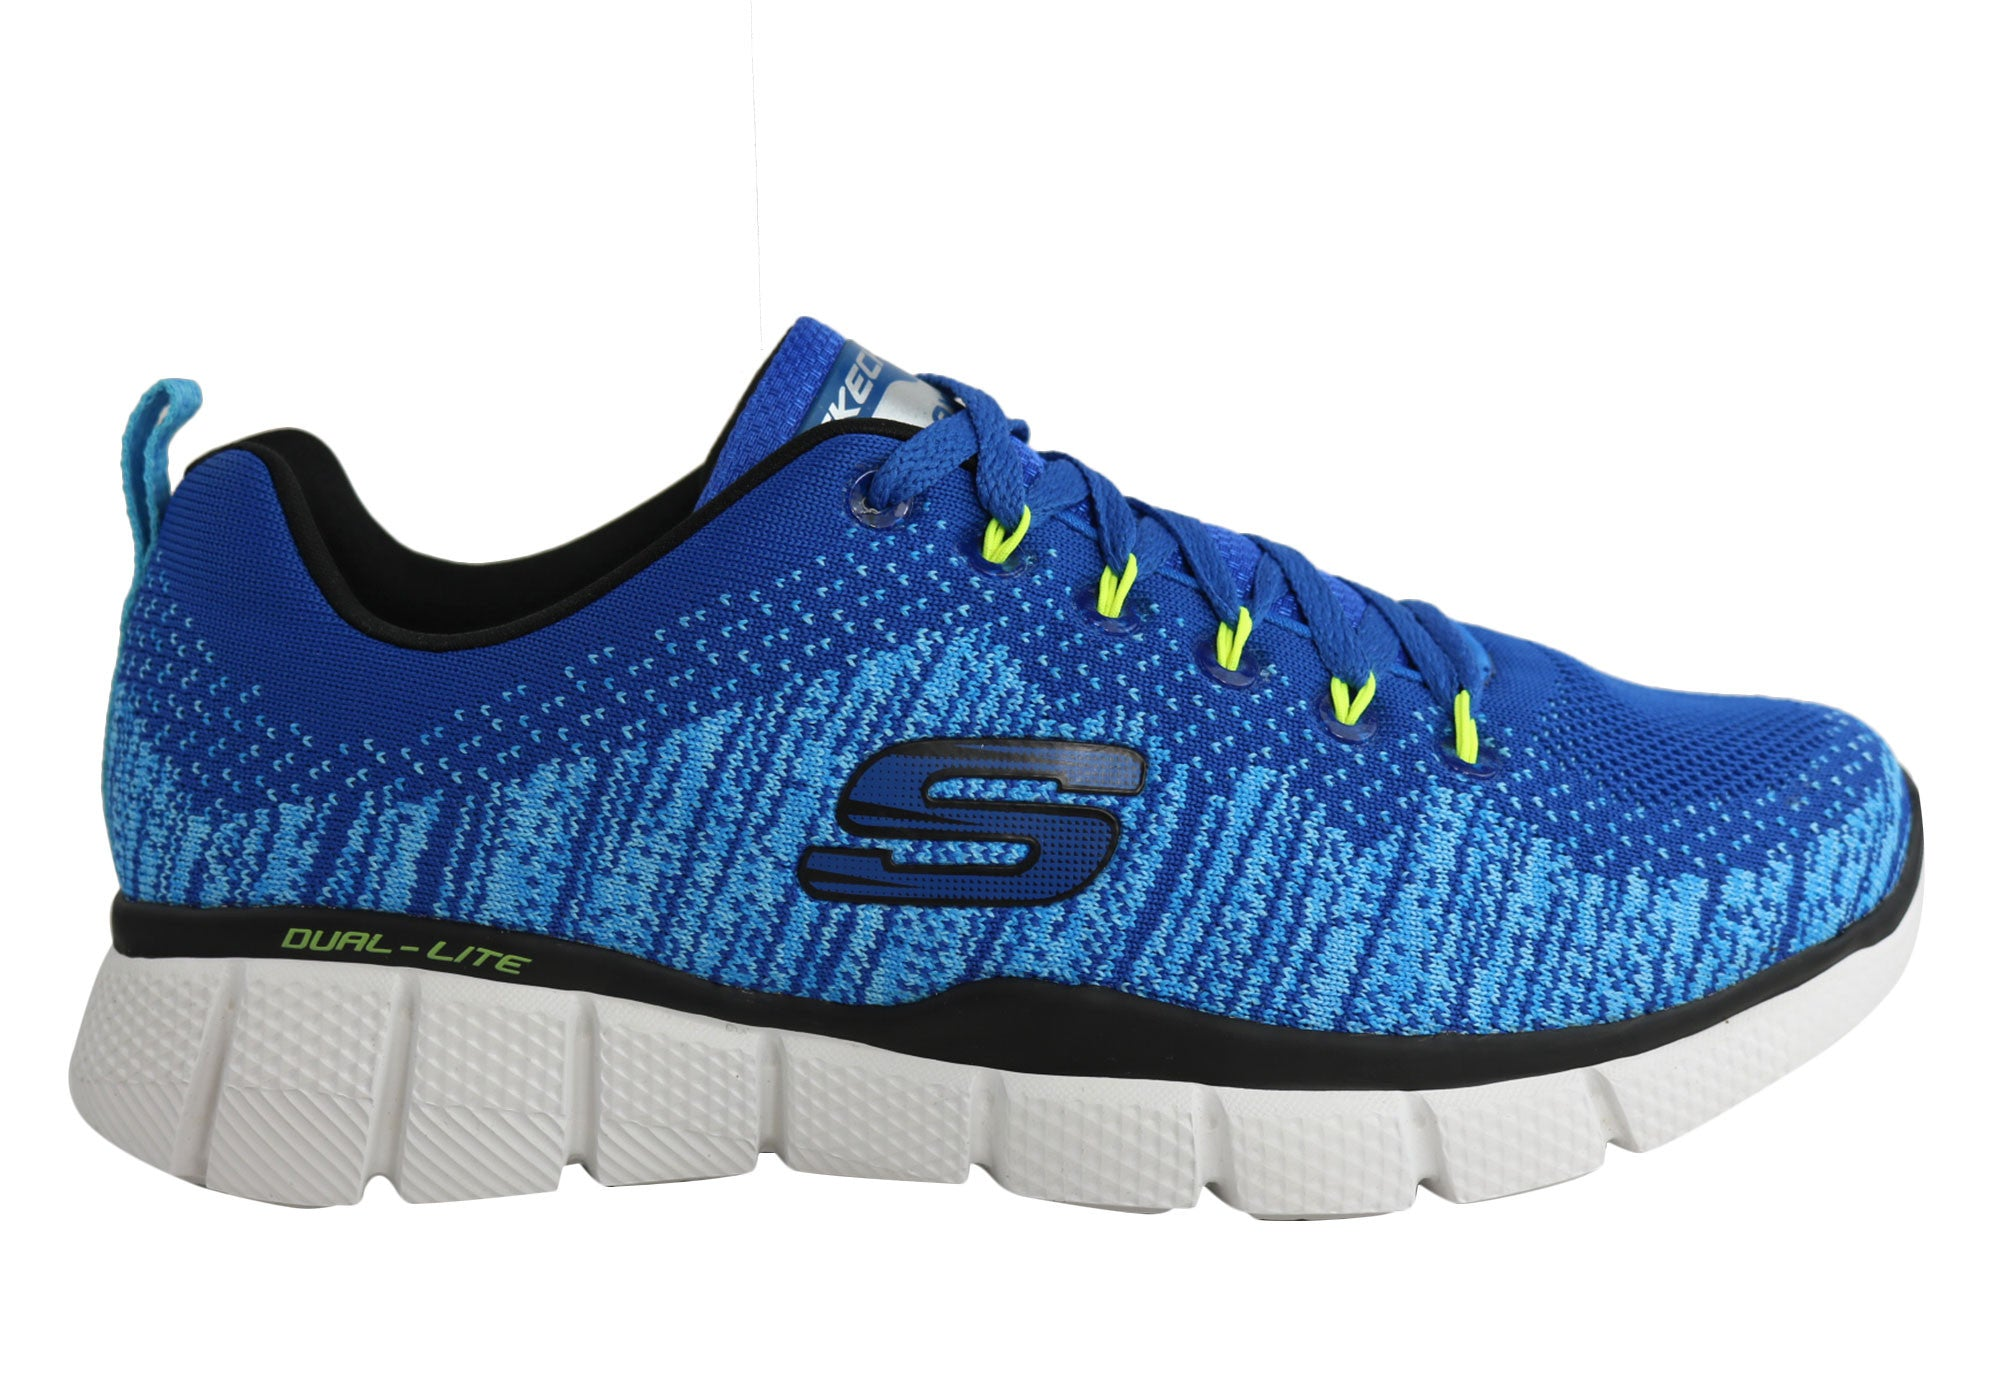 NEW-SKECHERS-EQUALIZER-2-0-EQUAL-GAME-MENS-MEMORY-FOAM-SHOES